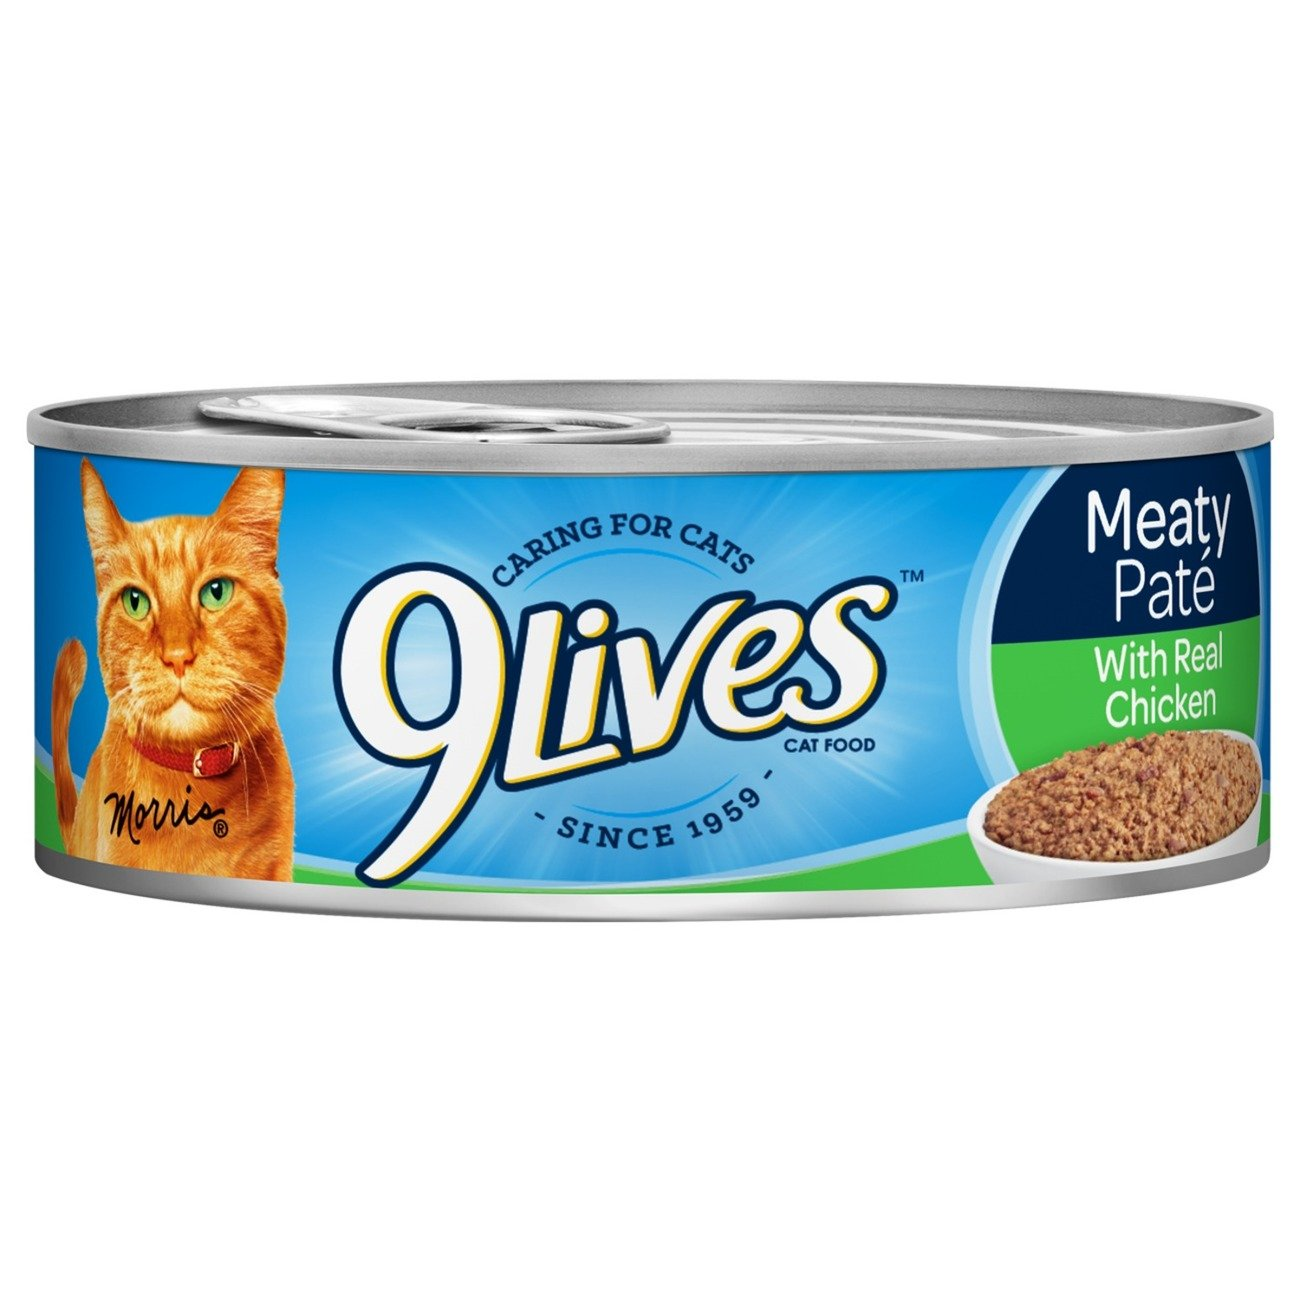 9Lives Meaty Paté With Real Chicken